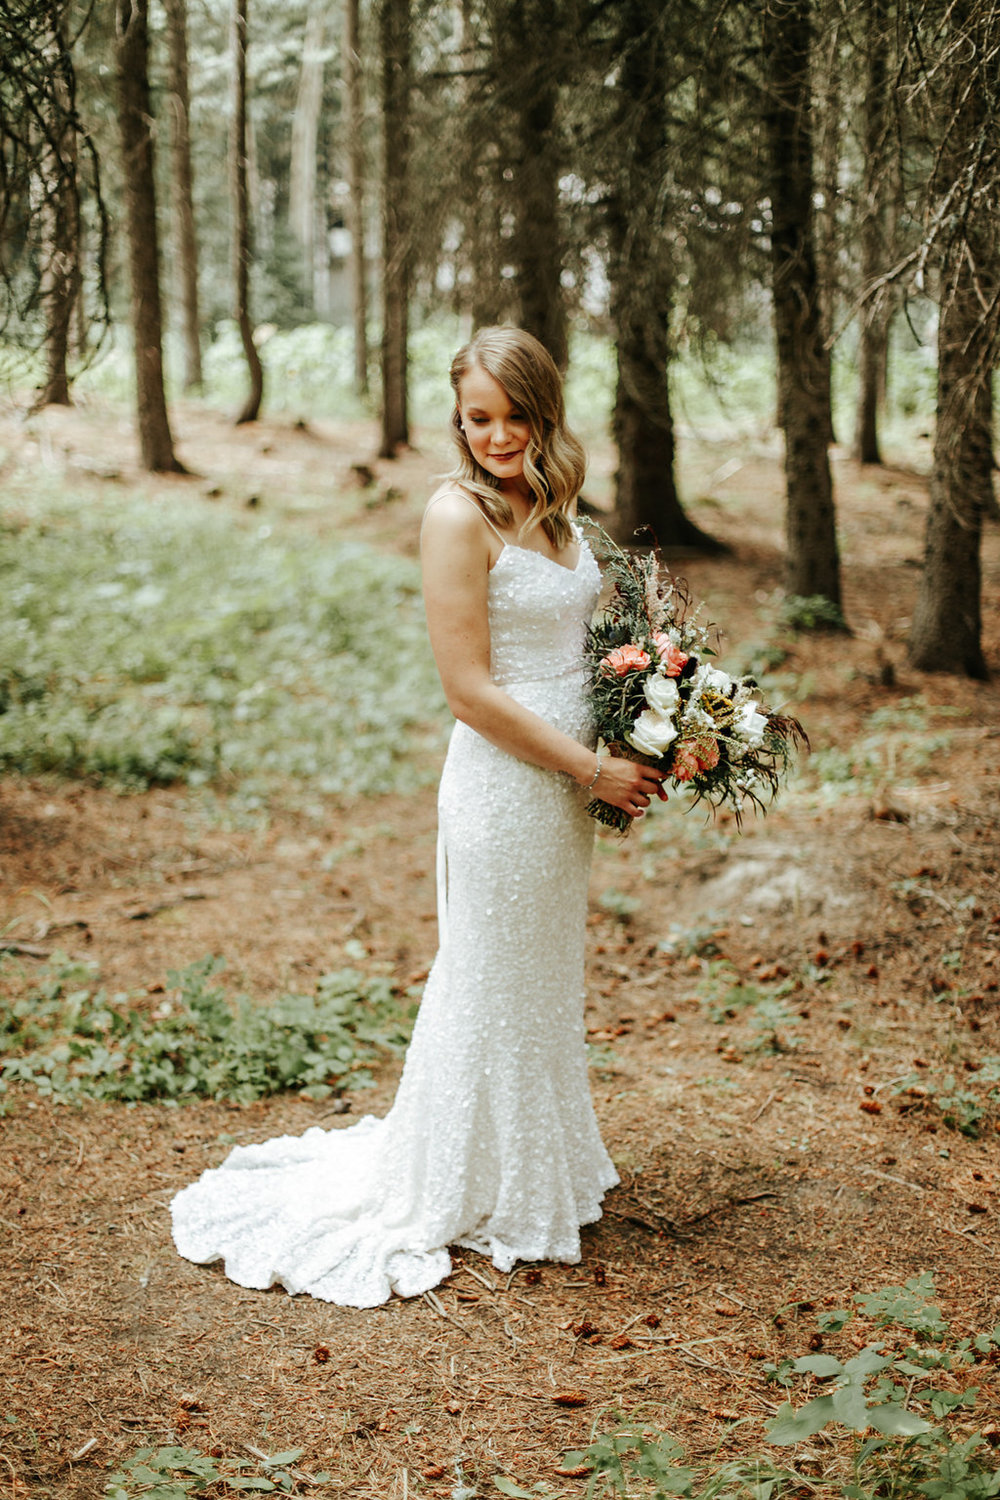 castle-mountain-wedding-love-and-be-loved-photography-seeds-flower-shop-florals-picture-image-photo-16.jpg